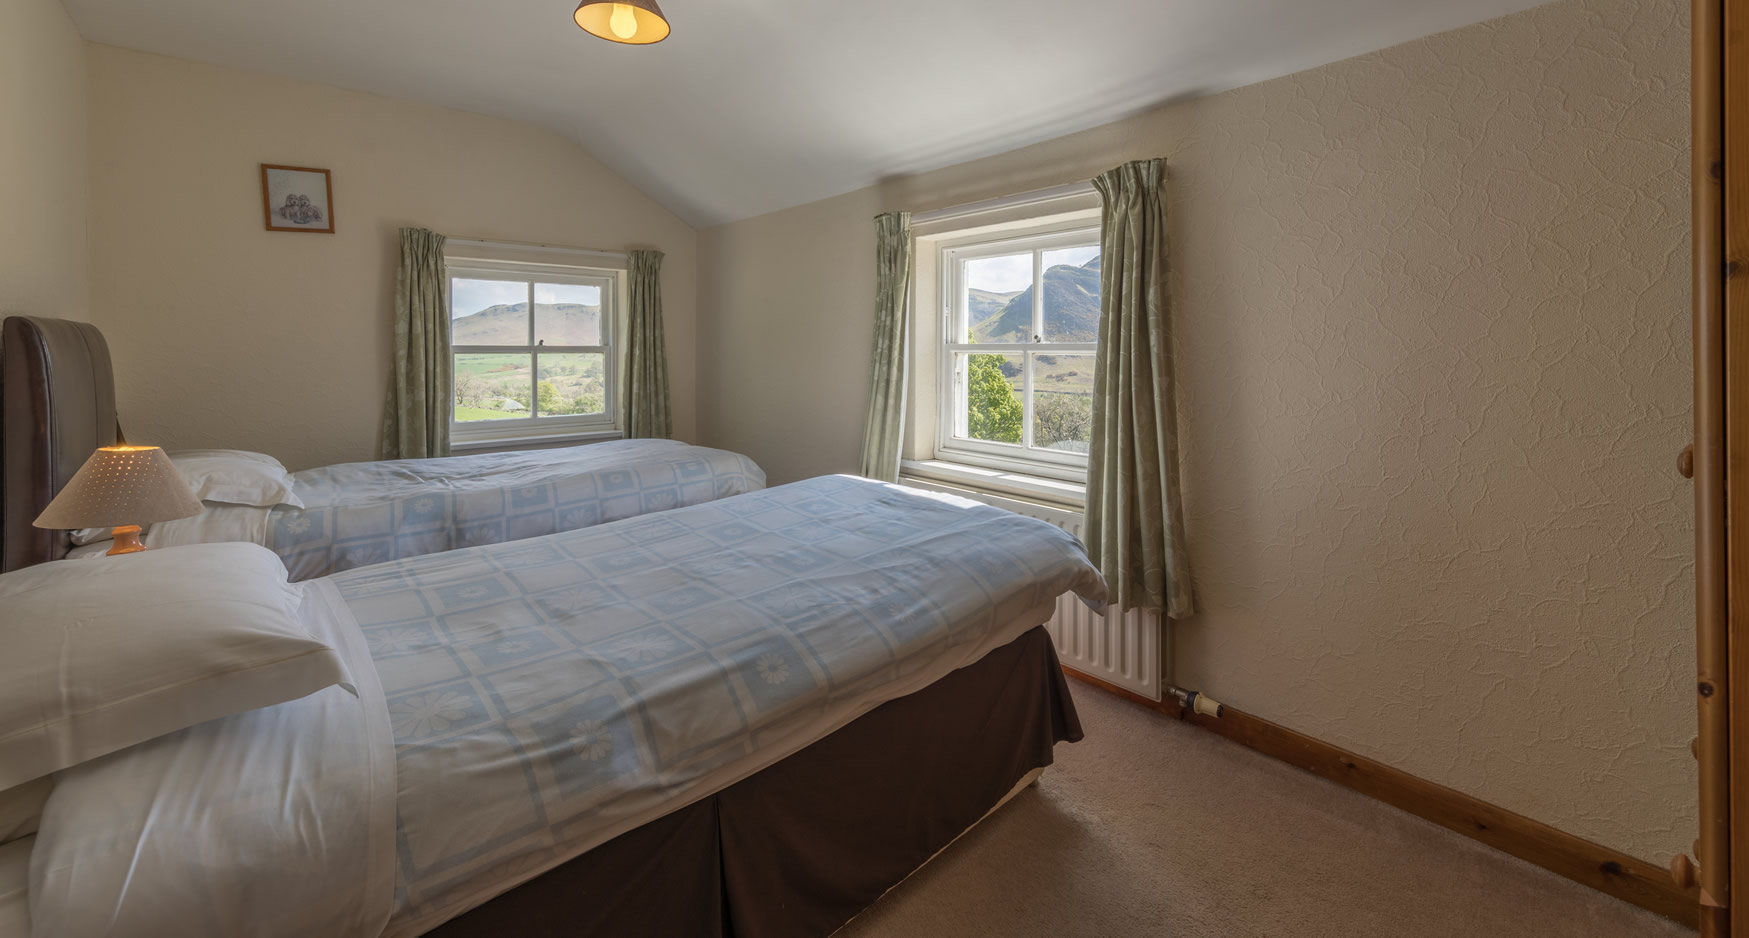 newlandscottage-twinbedroom2